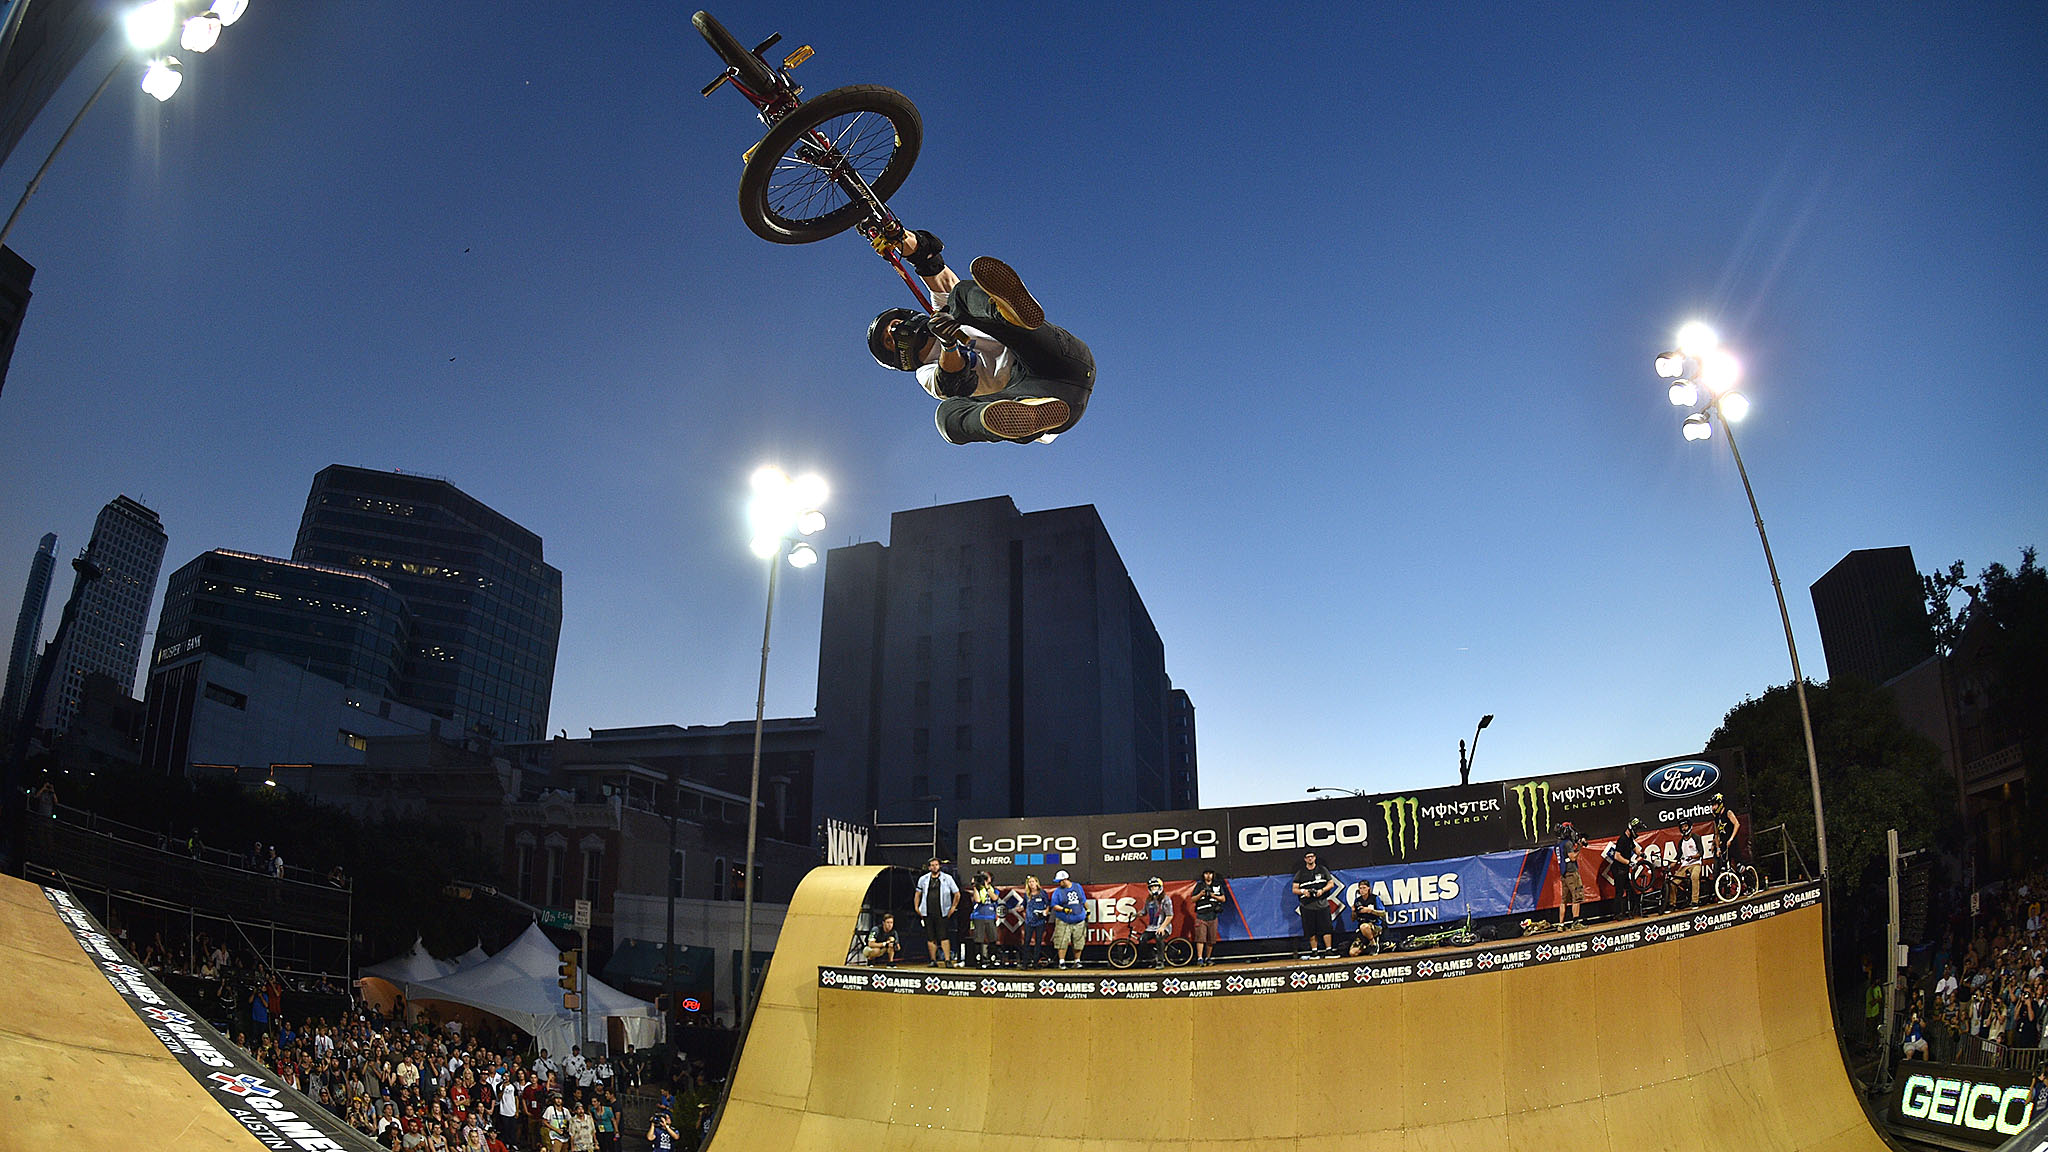 Jamie Bestwick won his ninth consecutive gold medal in BMX Vert on opening night of X Games Austin on Thursday, riding in the shadow of the Texas State Capitol building. Bestwick held off challenges from Simon Tabron and Dennis McCoy, who took silver and bronze, respectively, thanks to big tricks like a front flip flair, alley-oop tailwhip turndown, flair tailwhip and 540 one-foot seatgrab combo.